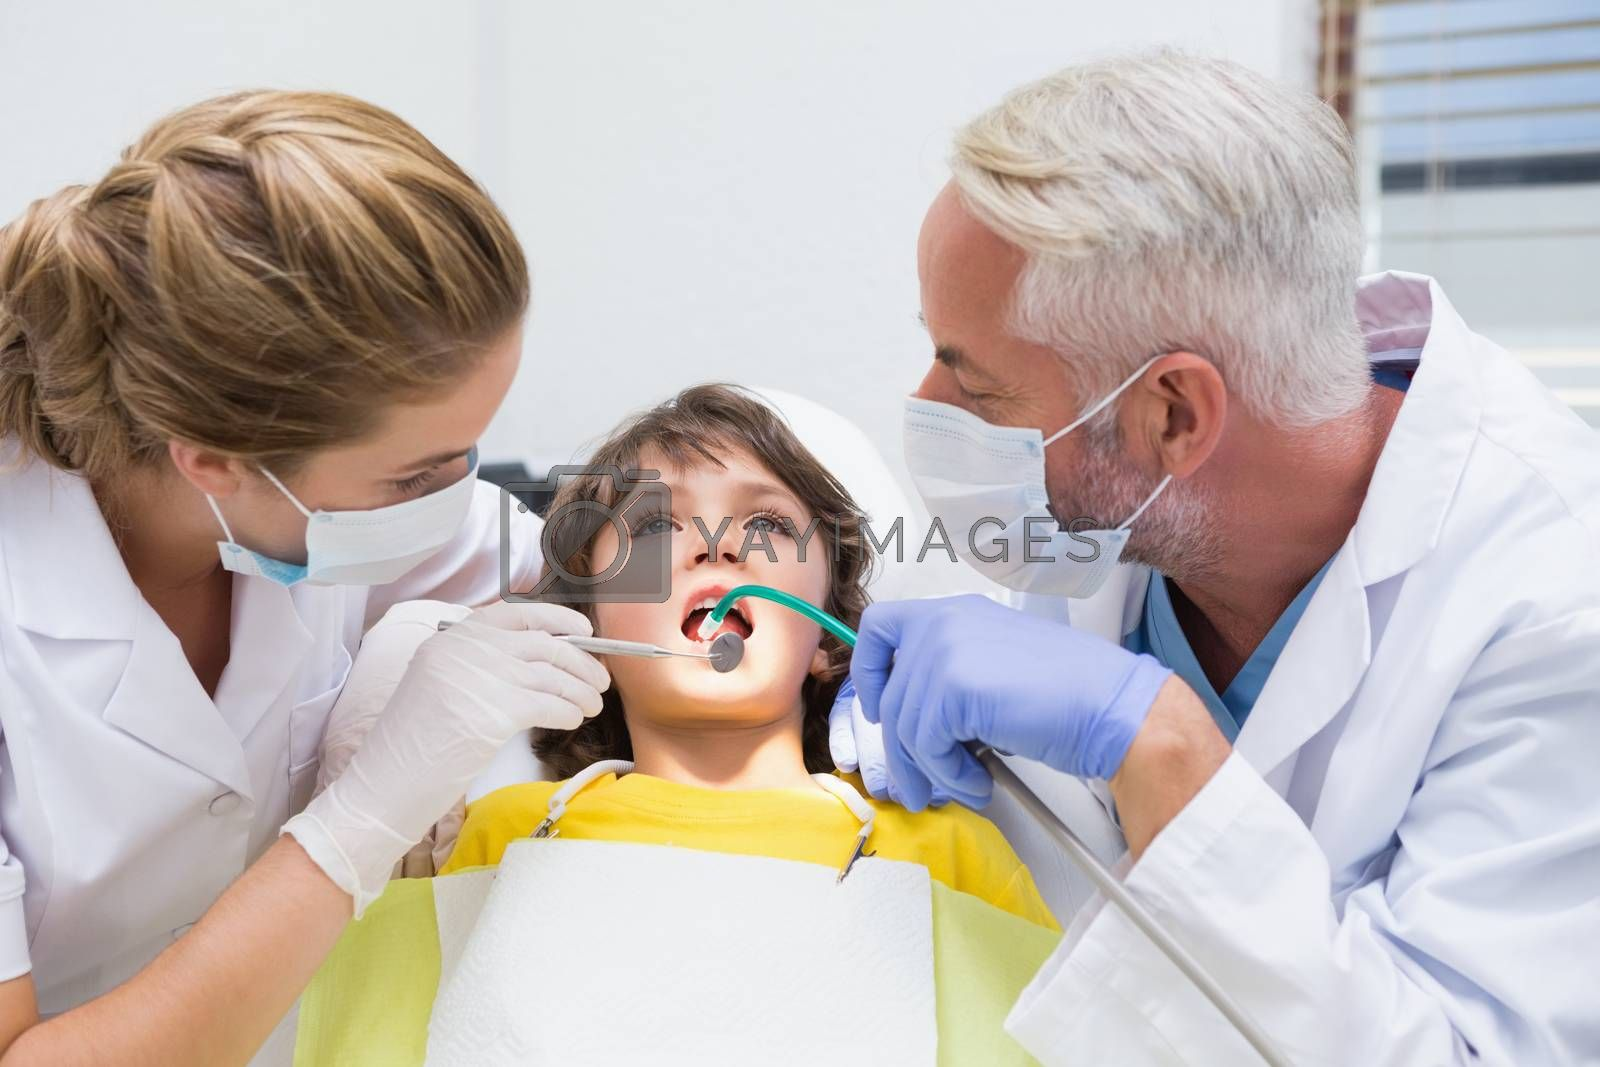 Pediatric dentist examining a little boys teeth with his assistant at the dental clinic